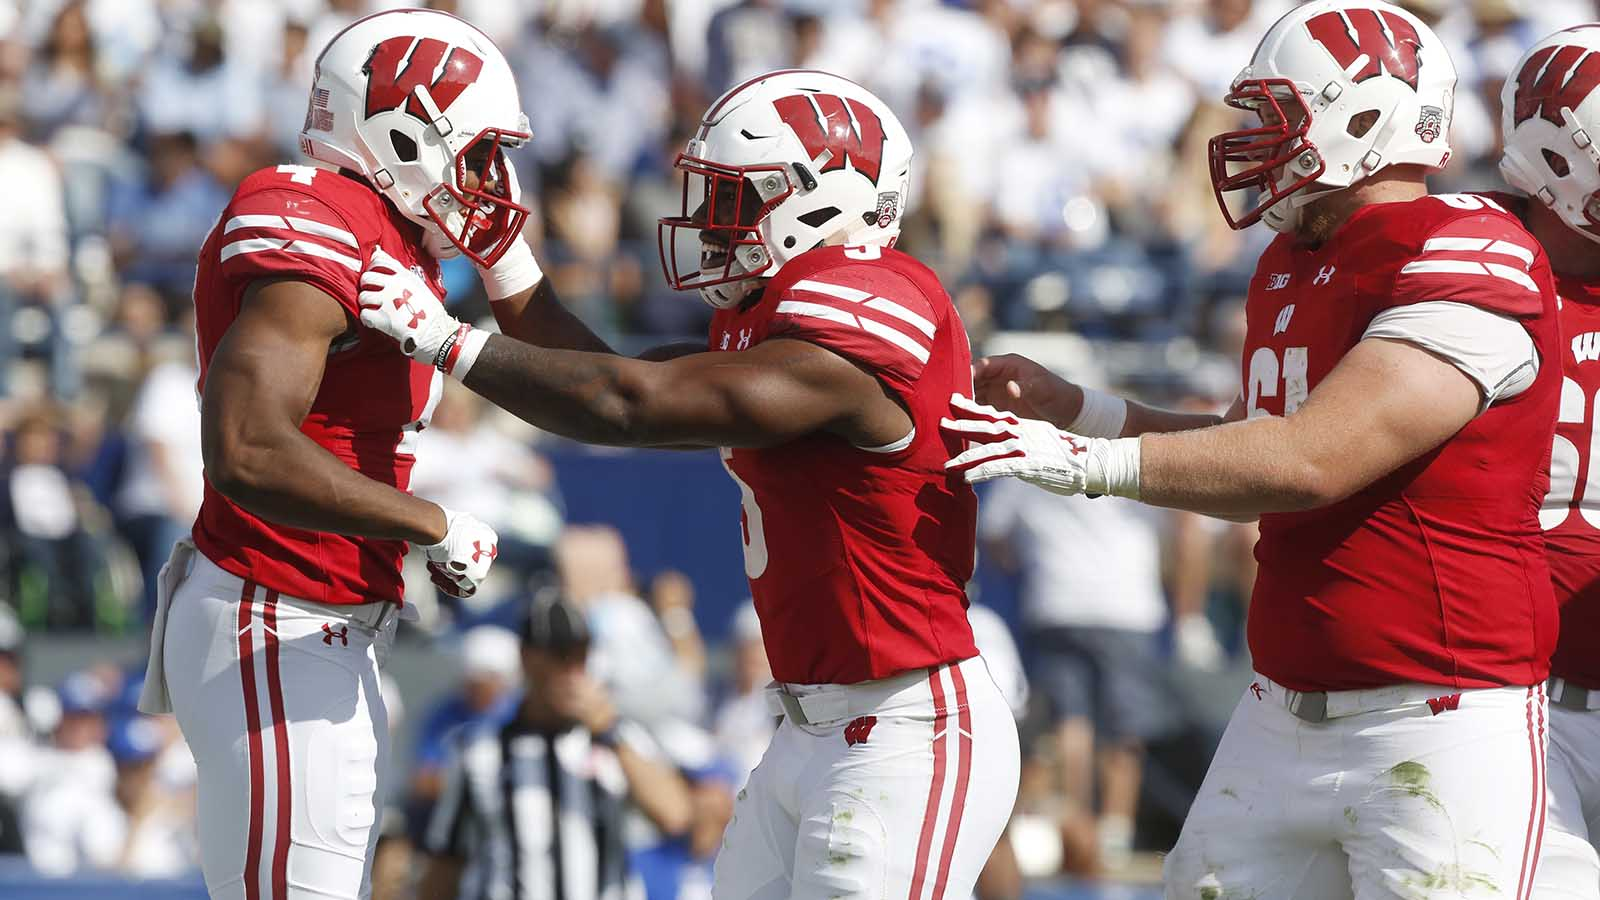 Wisconsin wide receiver A.J. Taylor, left, celebrates after scoring a touchdown with running back Chris James, center, and offensive lineman Tyler Biadasz (61) in the second half during an NCAA college football game against BYU, Saturday, Sept. 16, 2017, in Provo, Utah. (AP Photo/Kim Raff)